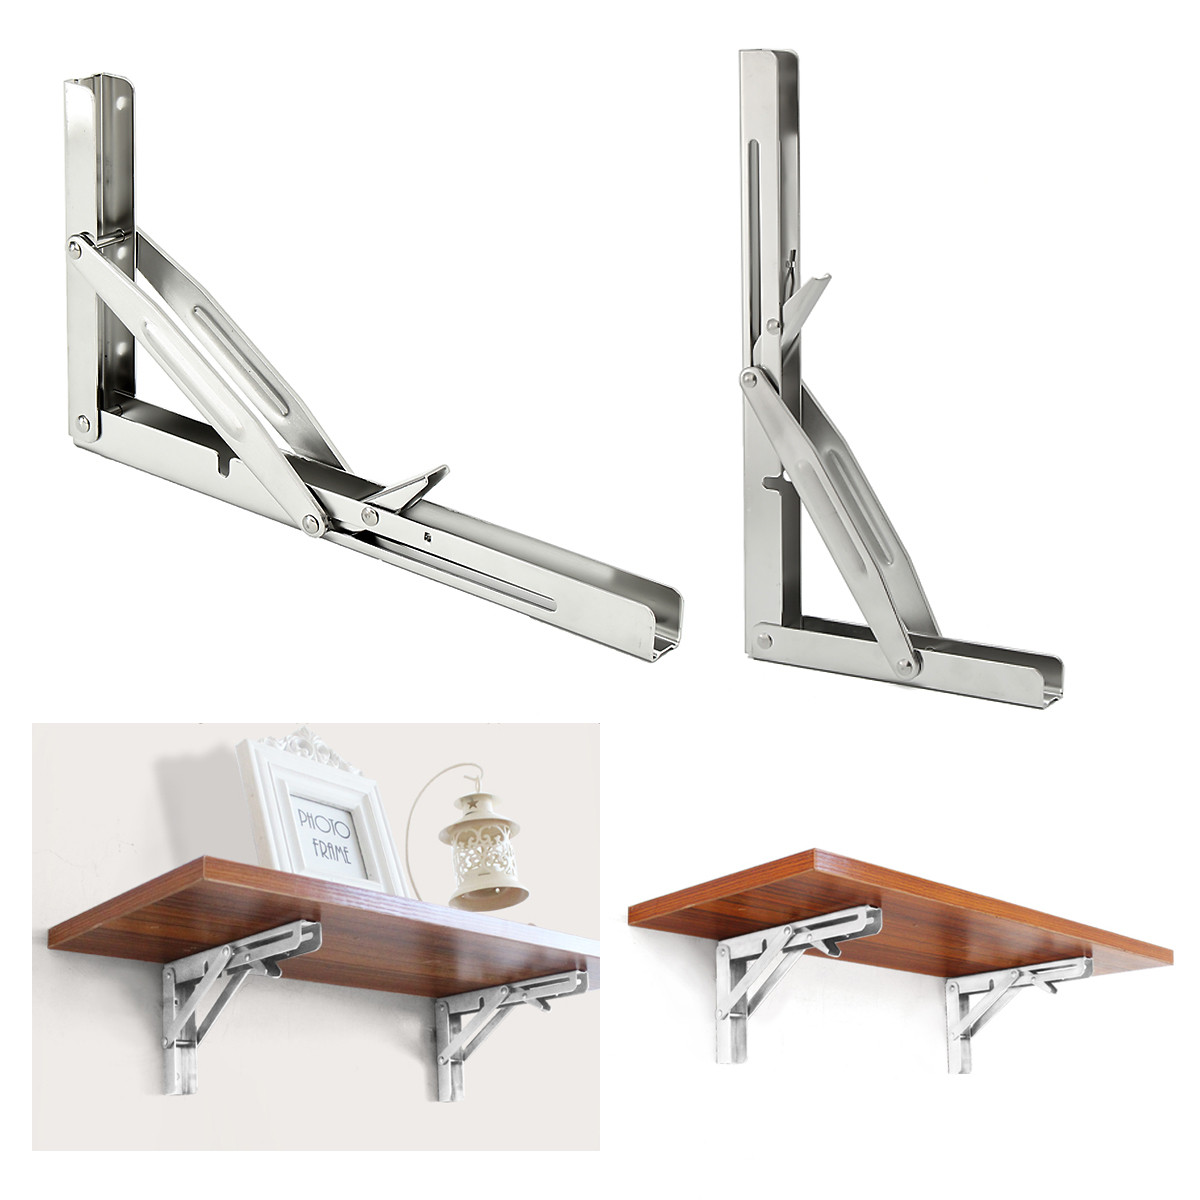 250kg Load 305 X 165mm 316 Stainless Steel Folding Shelf Benc Table Bracket Marine Grade Home Desk Bookrack Cup Holder Secretail